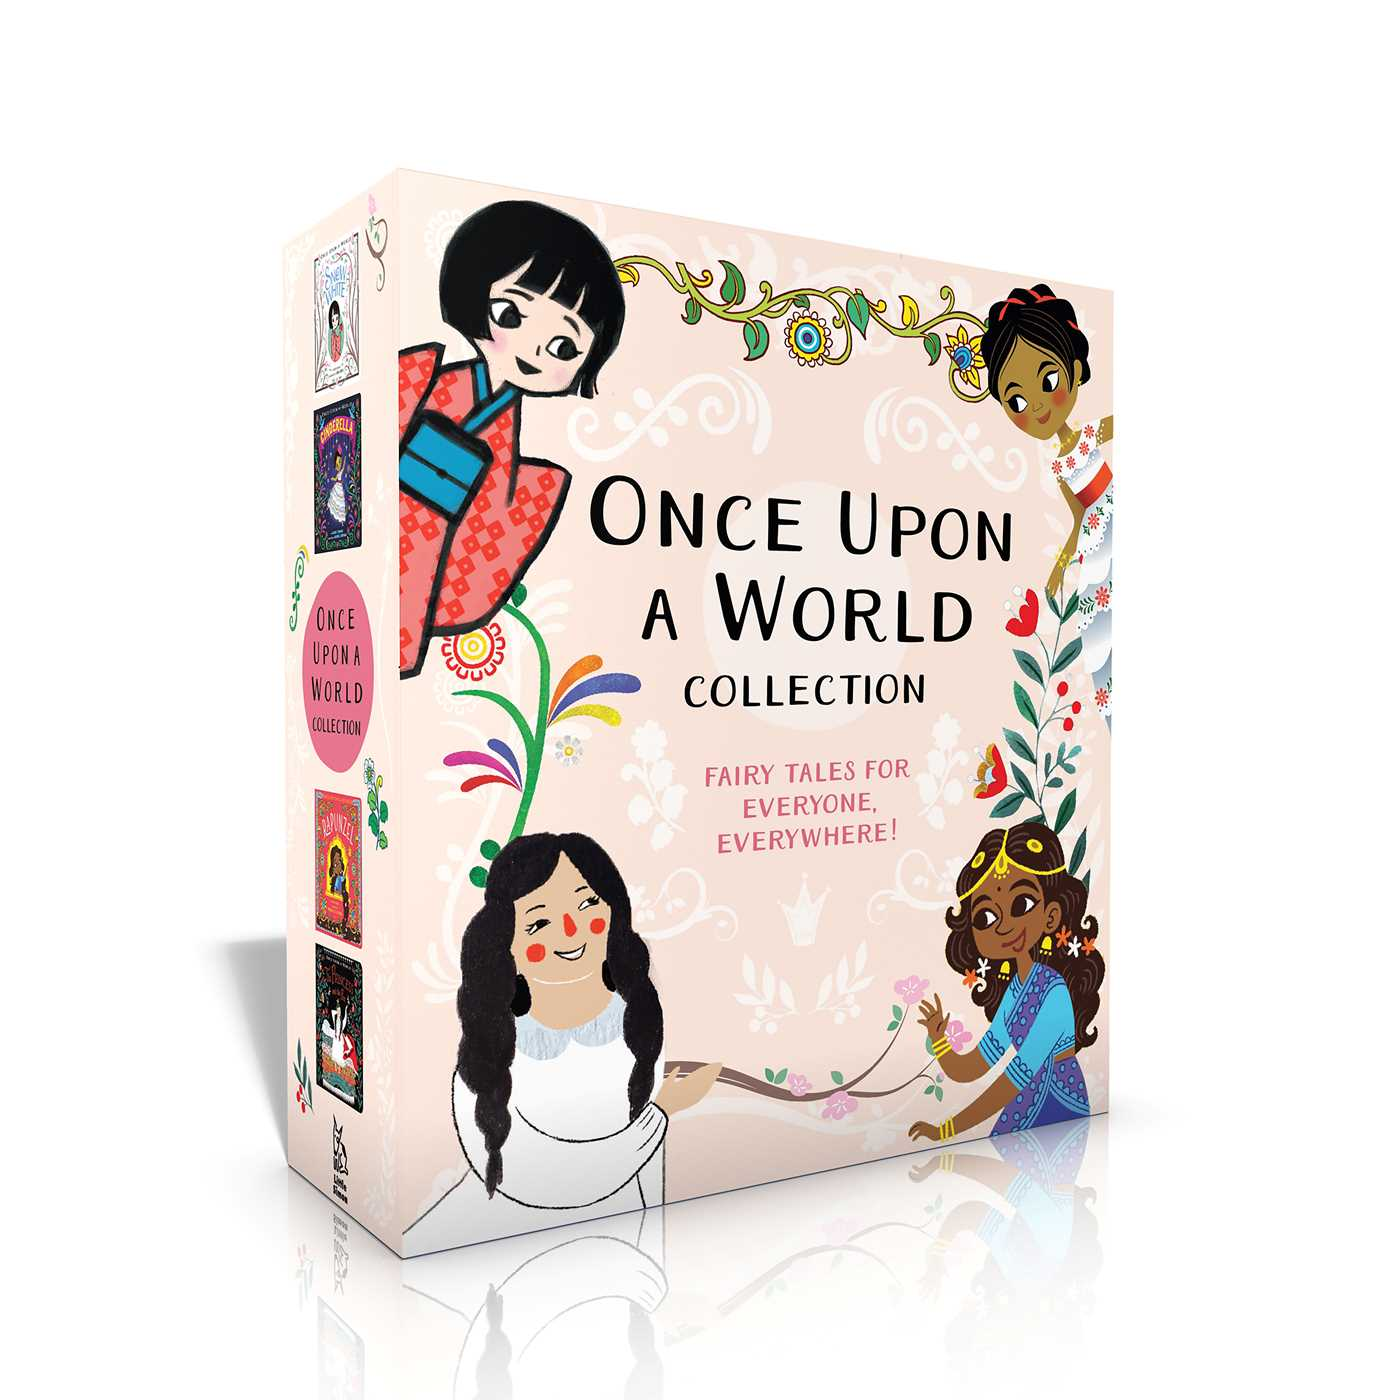 Once upon a world collection 9781534412903 hr